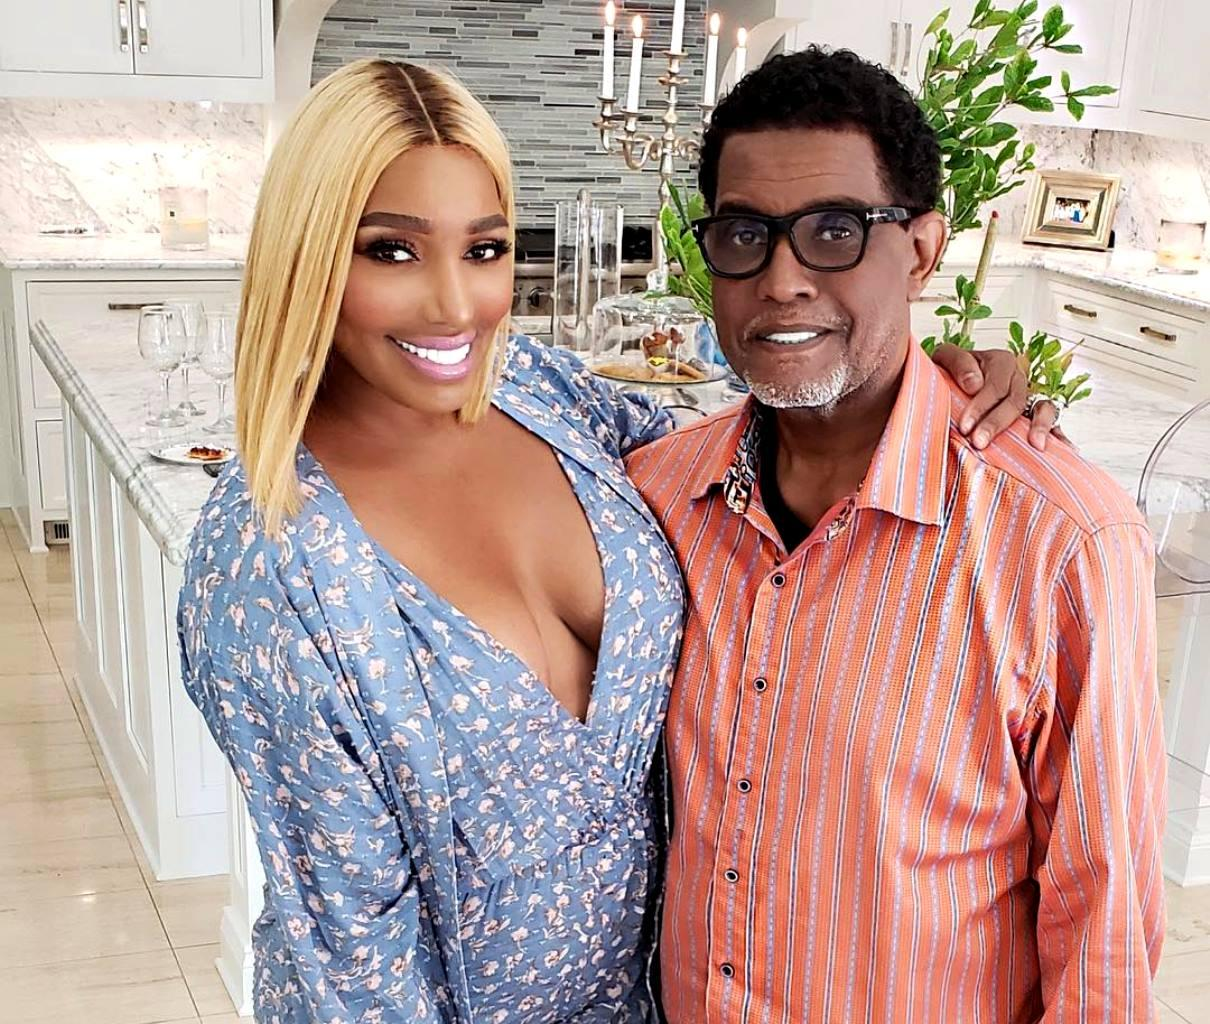 NeNe Leakes Celebrates Gregg Leakes' Birthday - Check Out The Post She Shared In His Honor